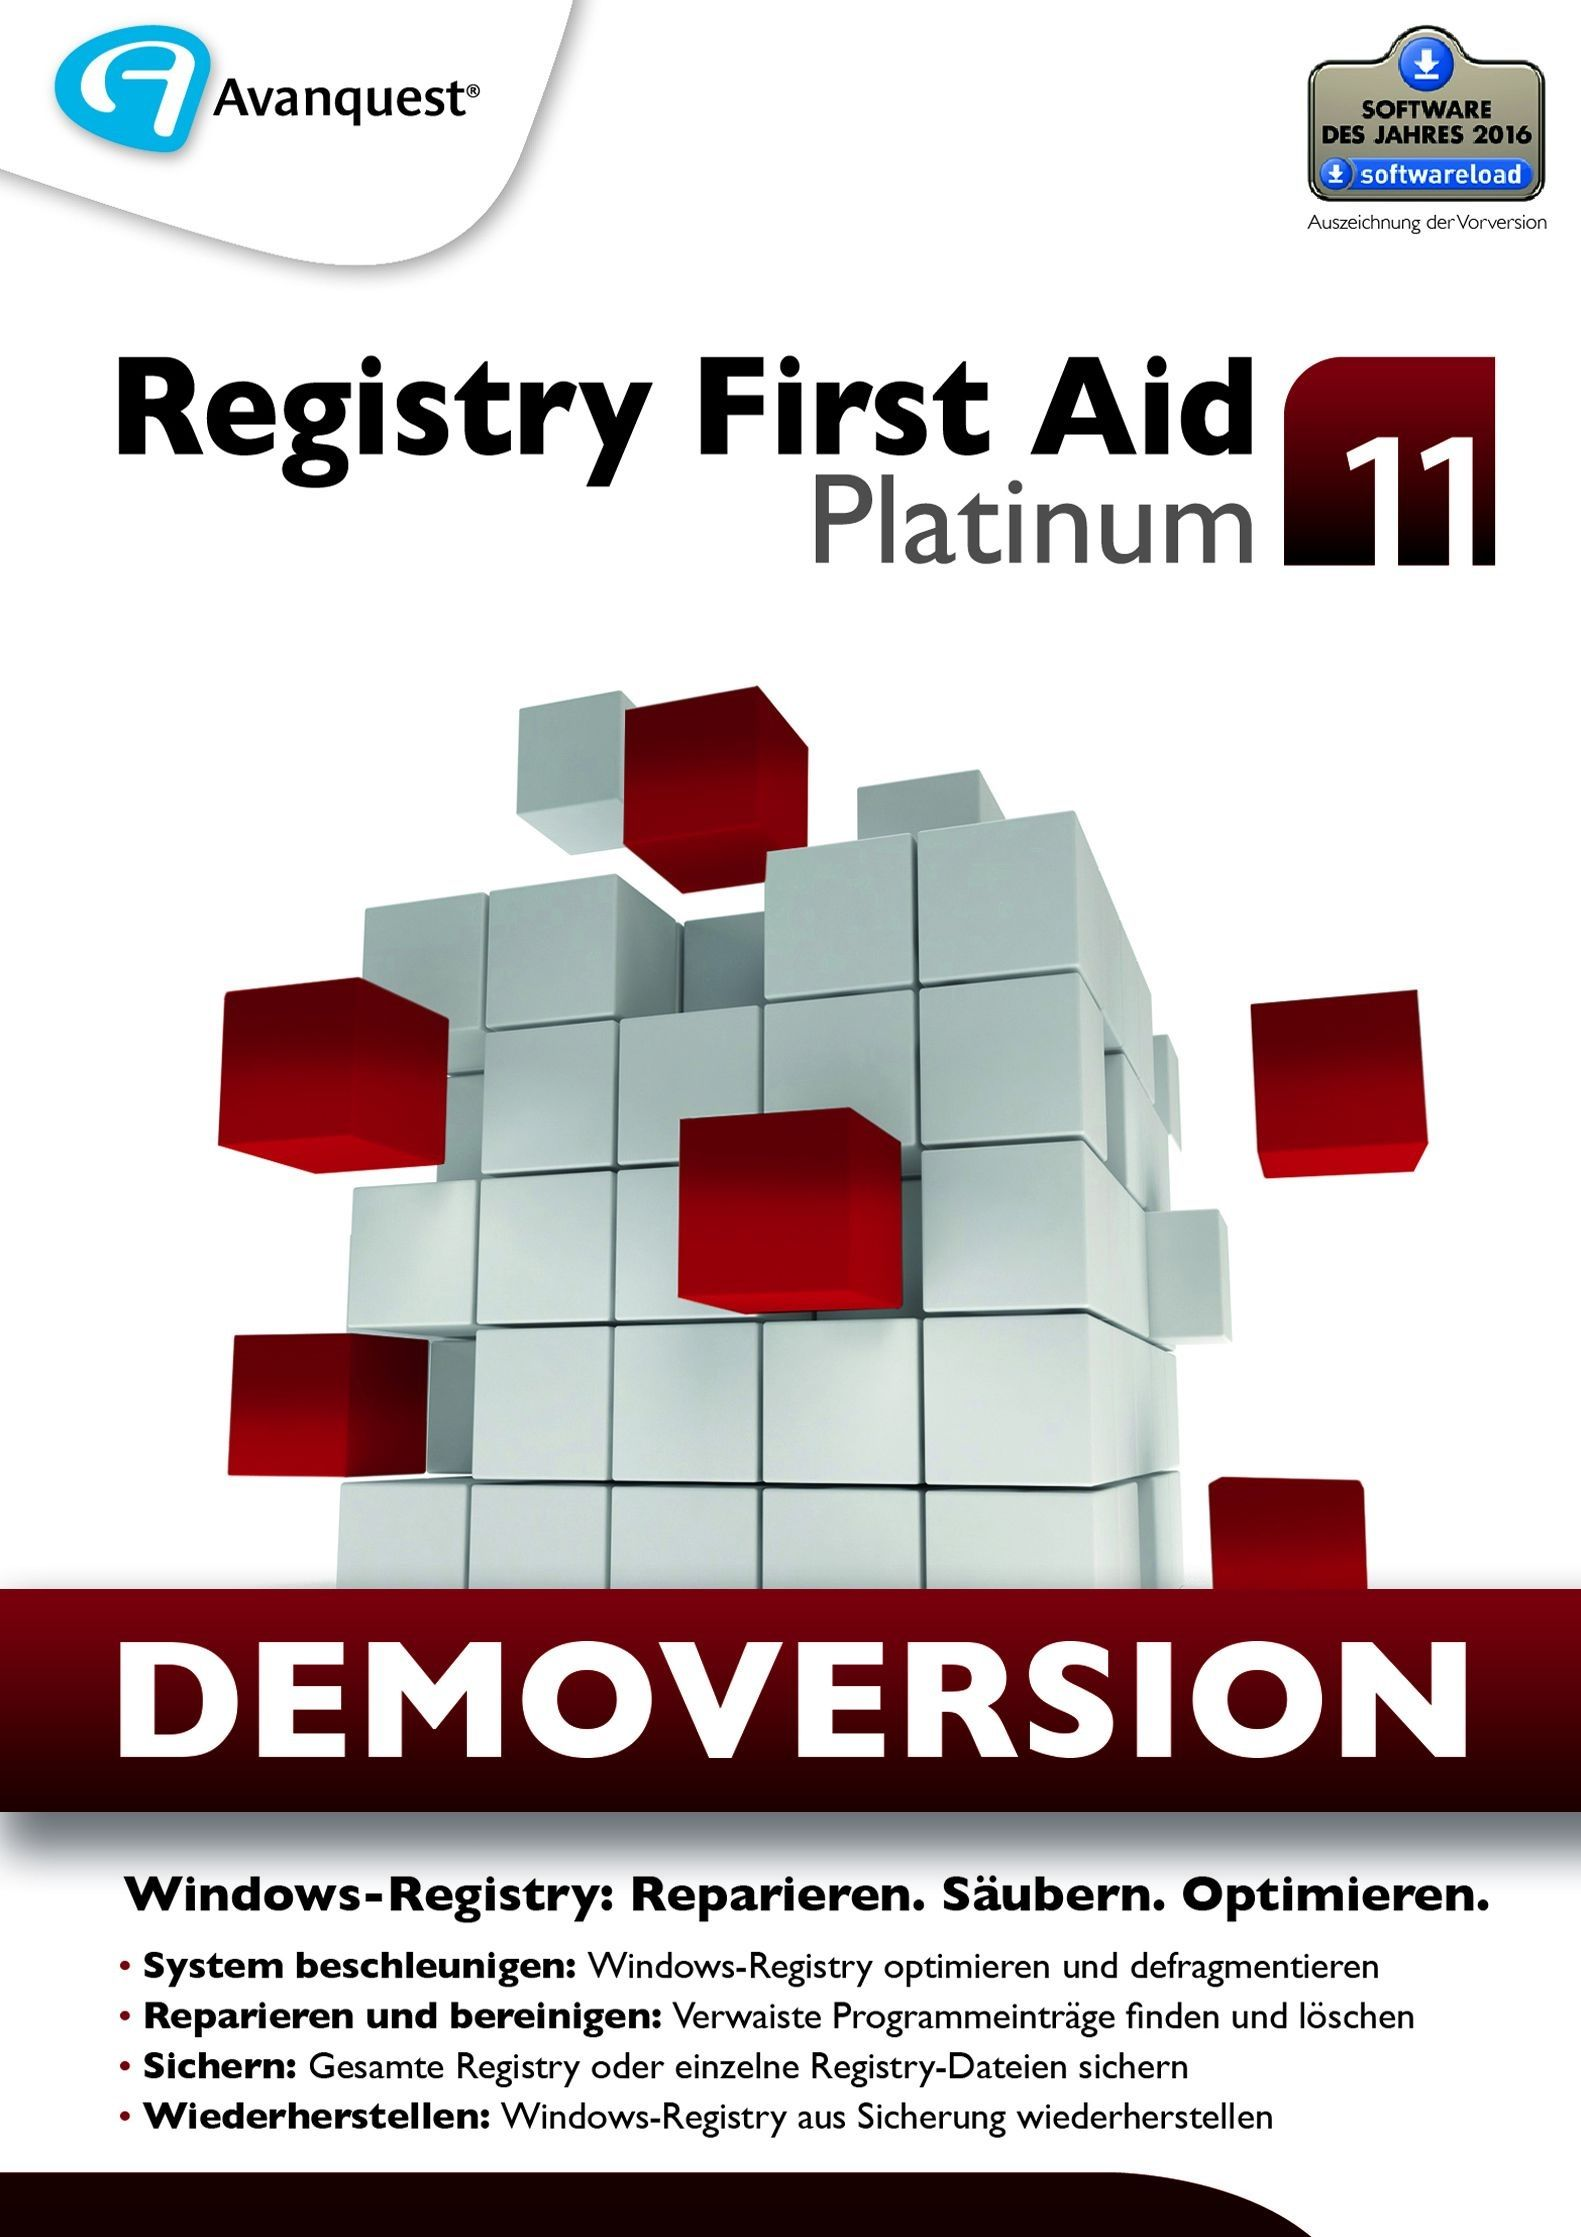 Registry First Aid 11 Platinum - Kostenlose Demoversion! Windows 10|8|7|Vista|XP [Download]